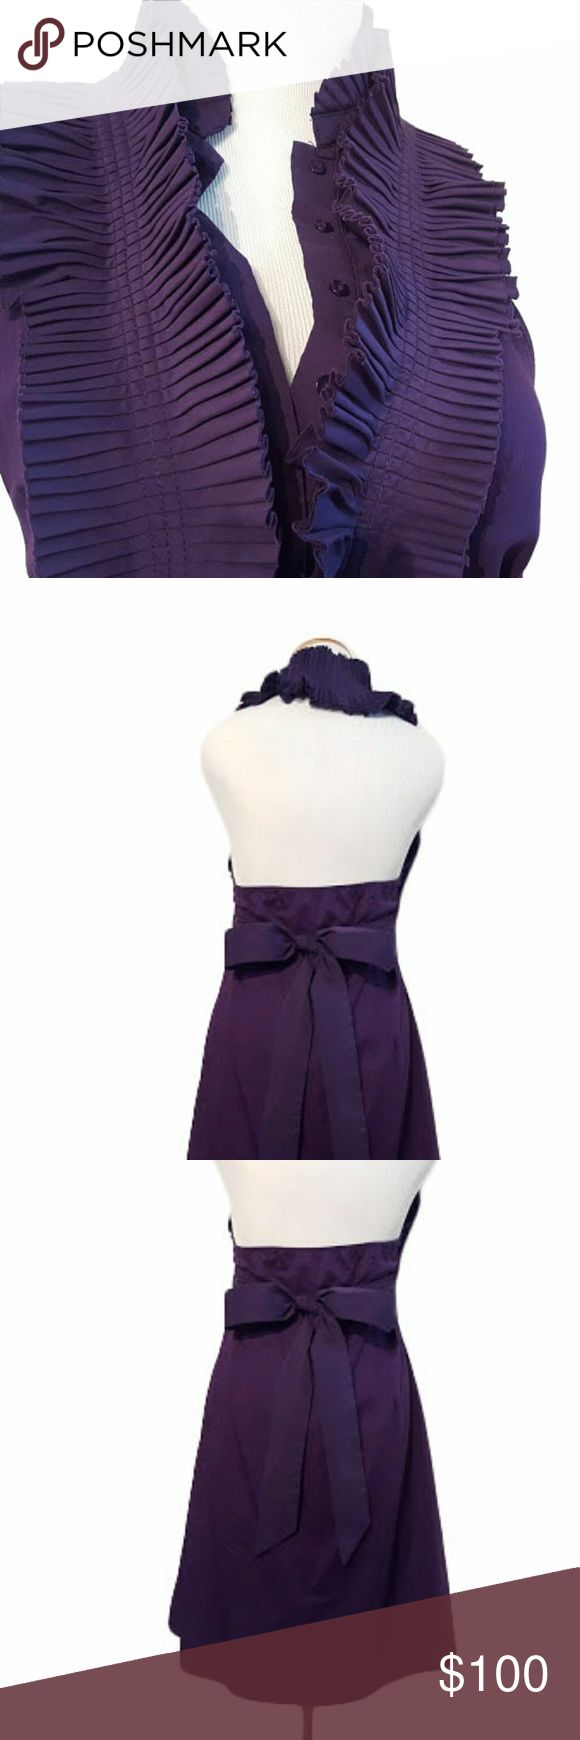 Royal Purple Queen Collared Dress The perfect purple dress for that special occasion when modesty meeting style is required; Or just the latter. Graduation, weddings, planned family events, dinners. Amazing pleated ruffle halter neckline, wraps entirely around neck down to bustline. Button up front. Huge bowtie back. Tighten front waistline to perfectly fit your curves & comfort. Falls just above knee. Purple everything, even the buttons and stitching! The most unique semi-casual occasion…